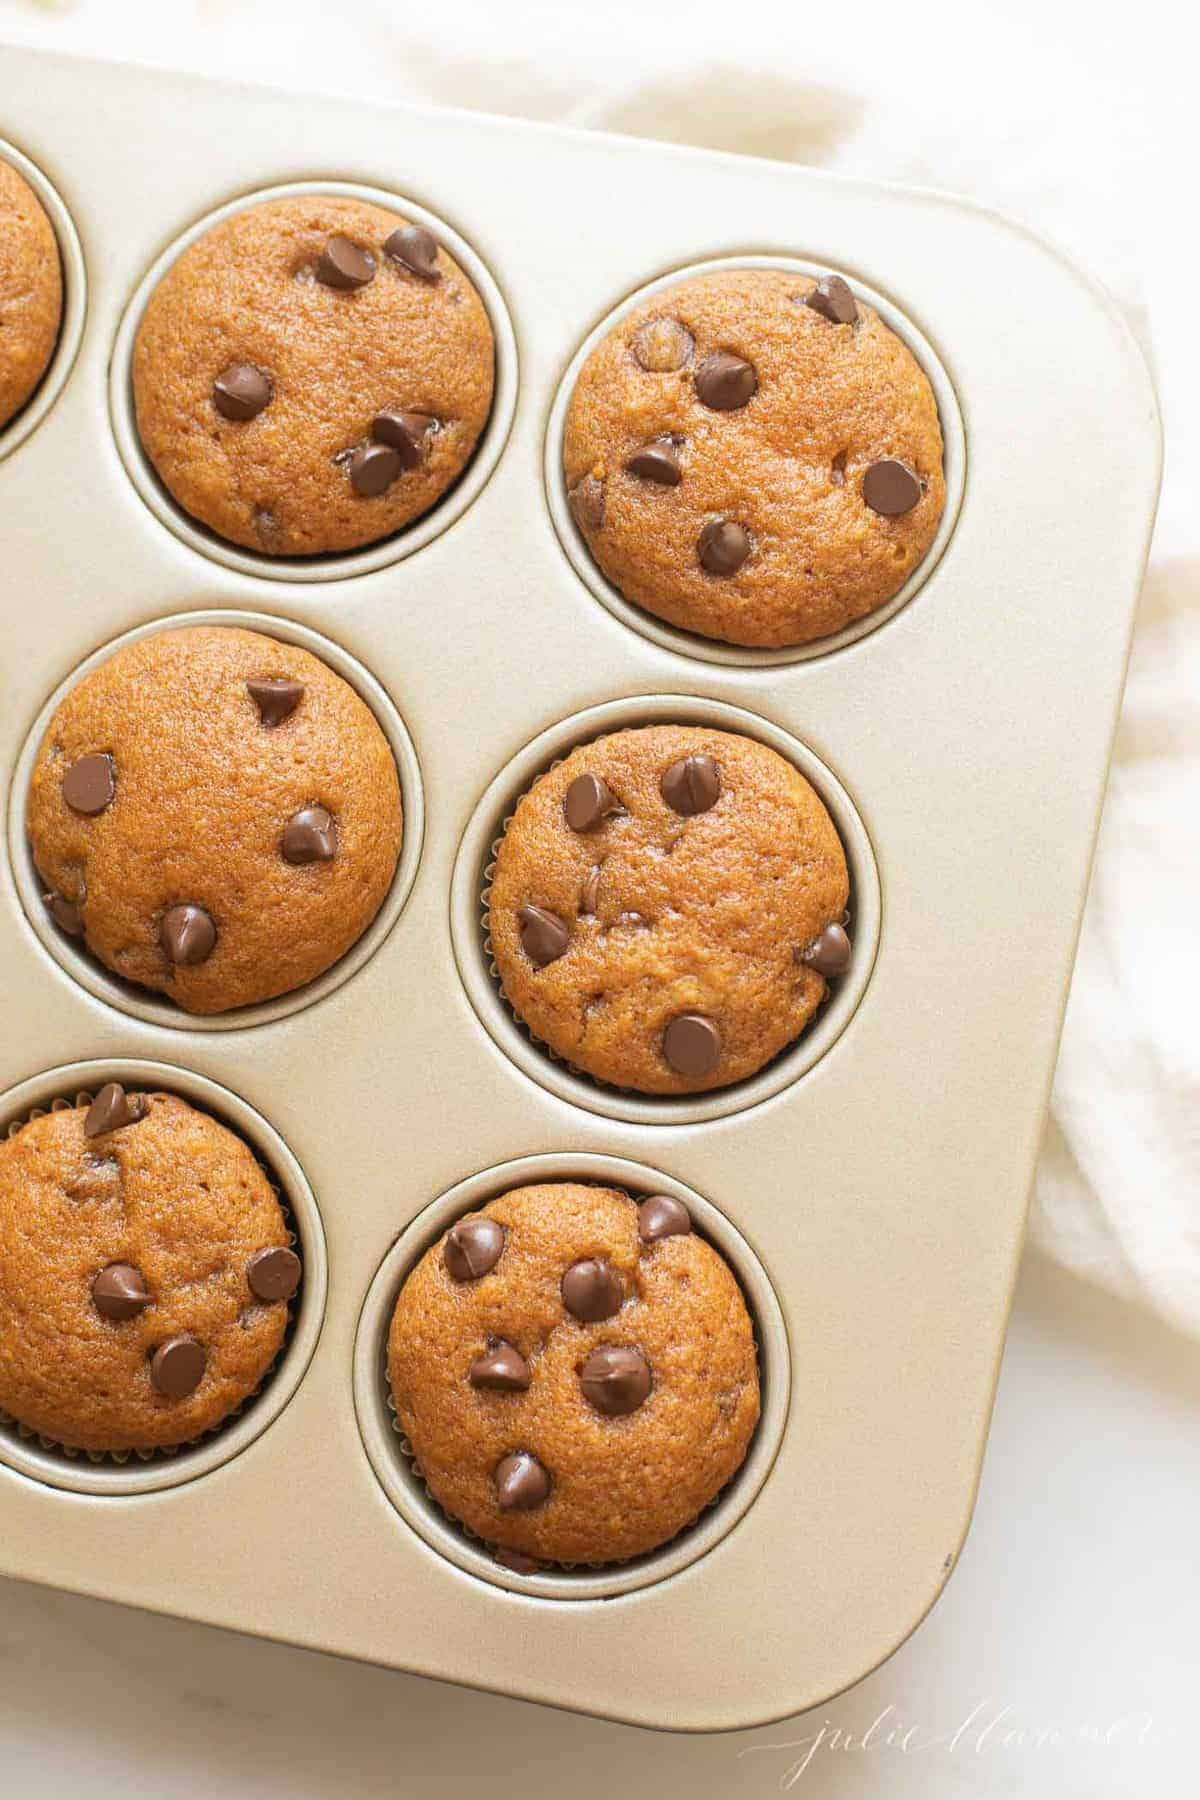 metal muffin pan with chocolate chip pumpkin muffins inside.